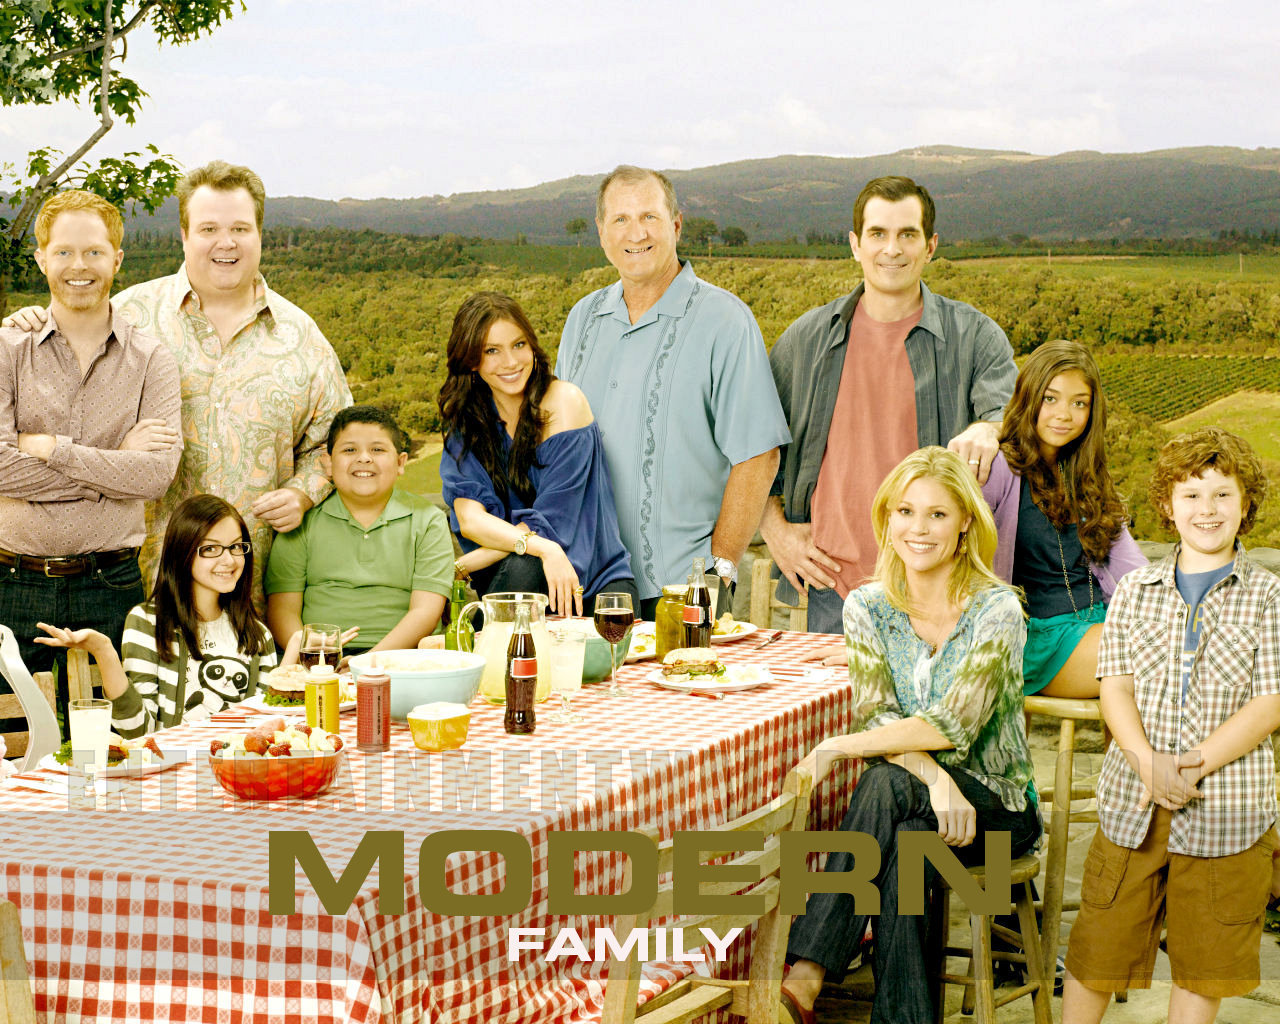 modern family wallpaper photo - photo #22